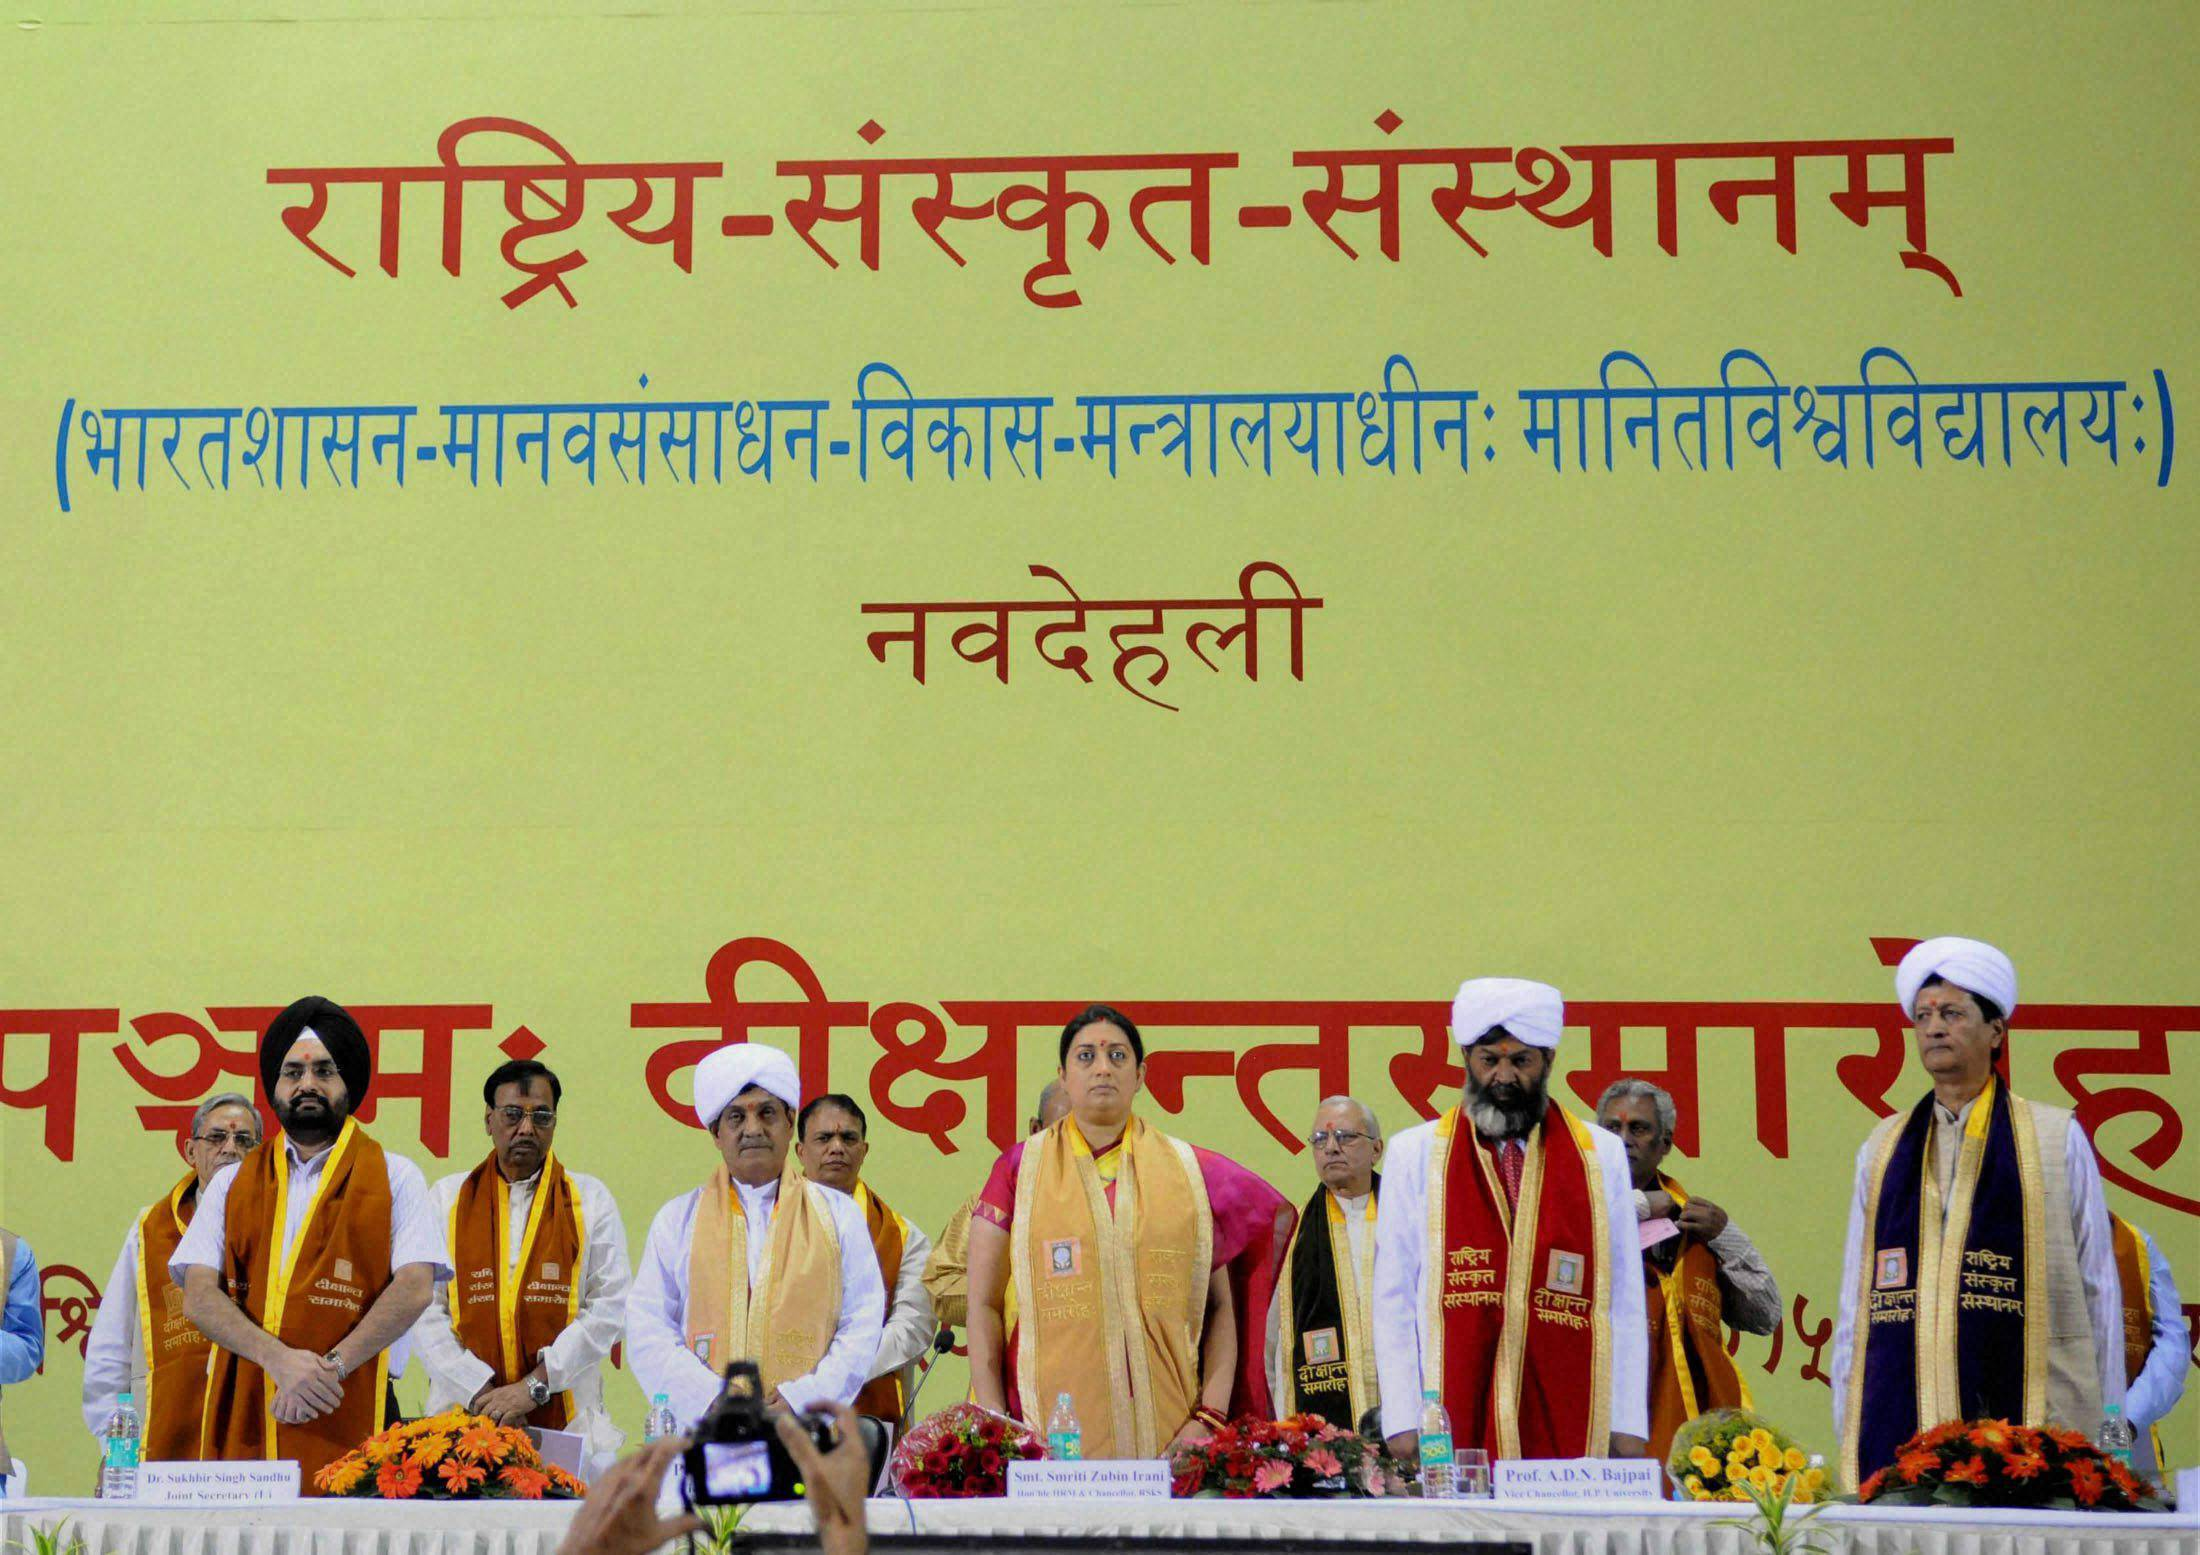 Sanskrit Newspaper of the country is threatened to close